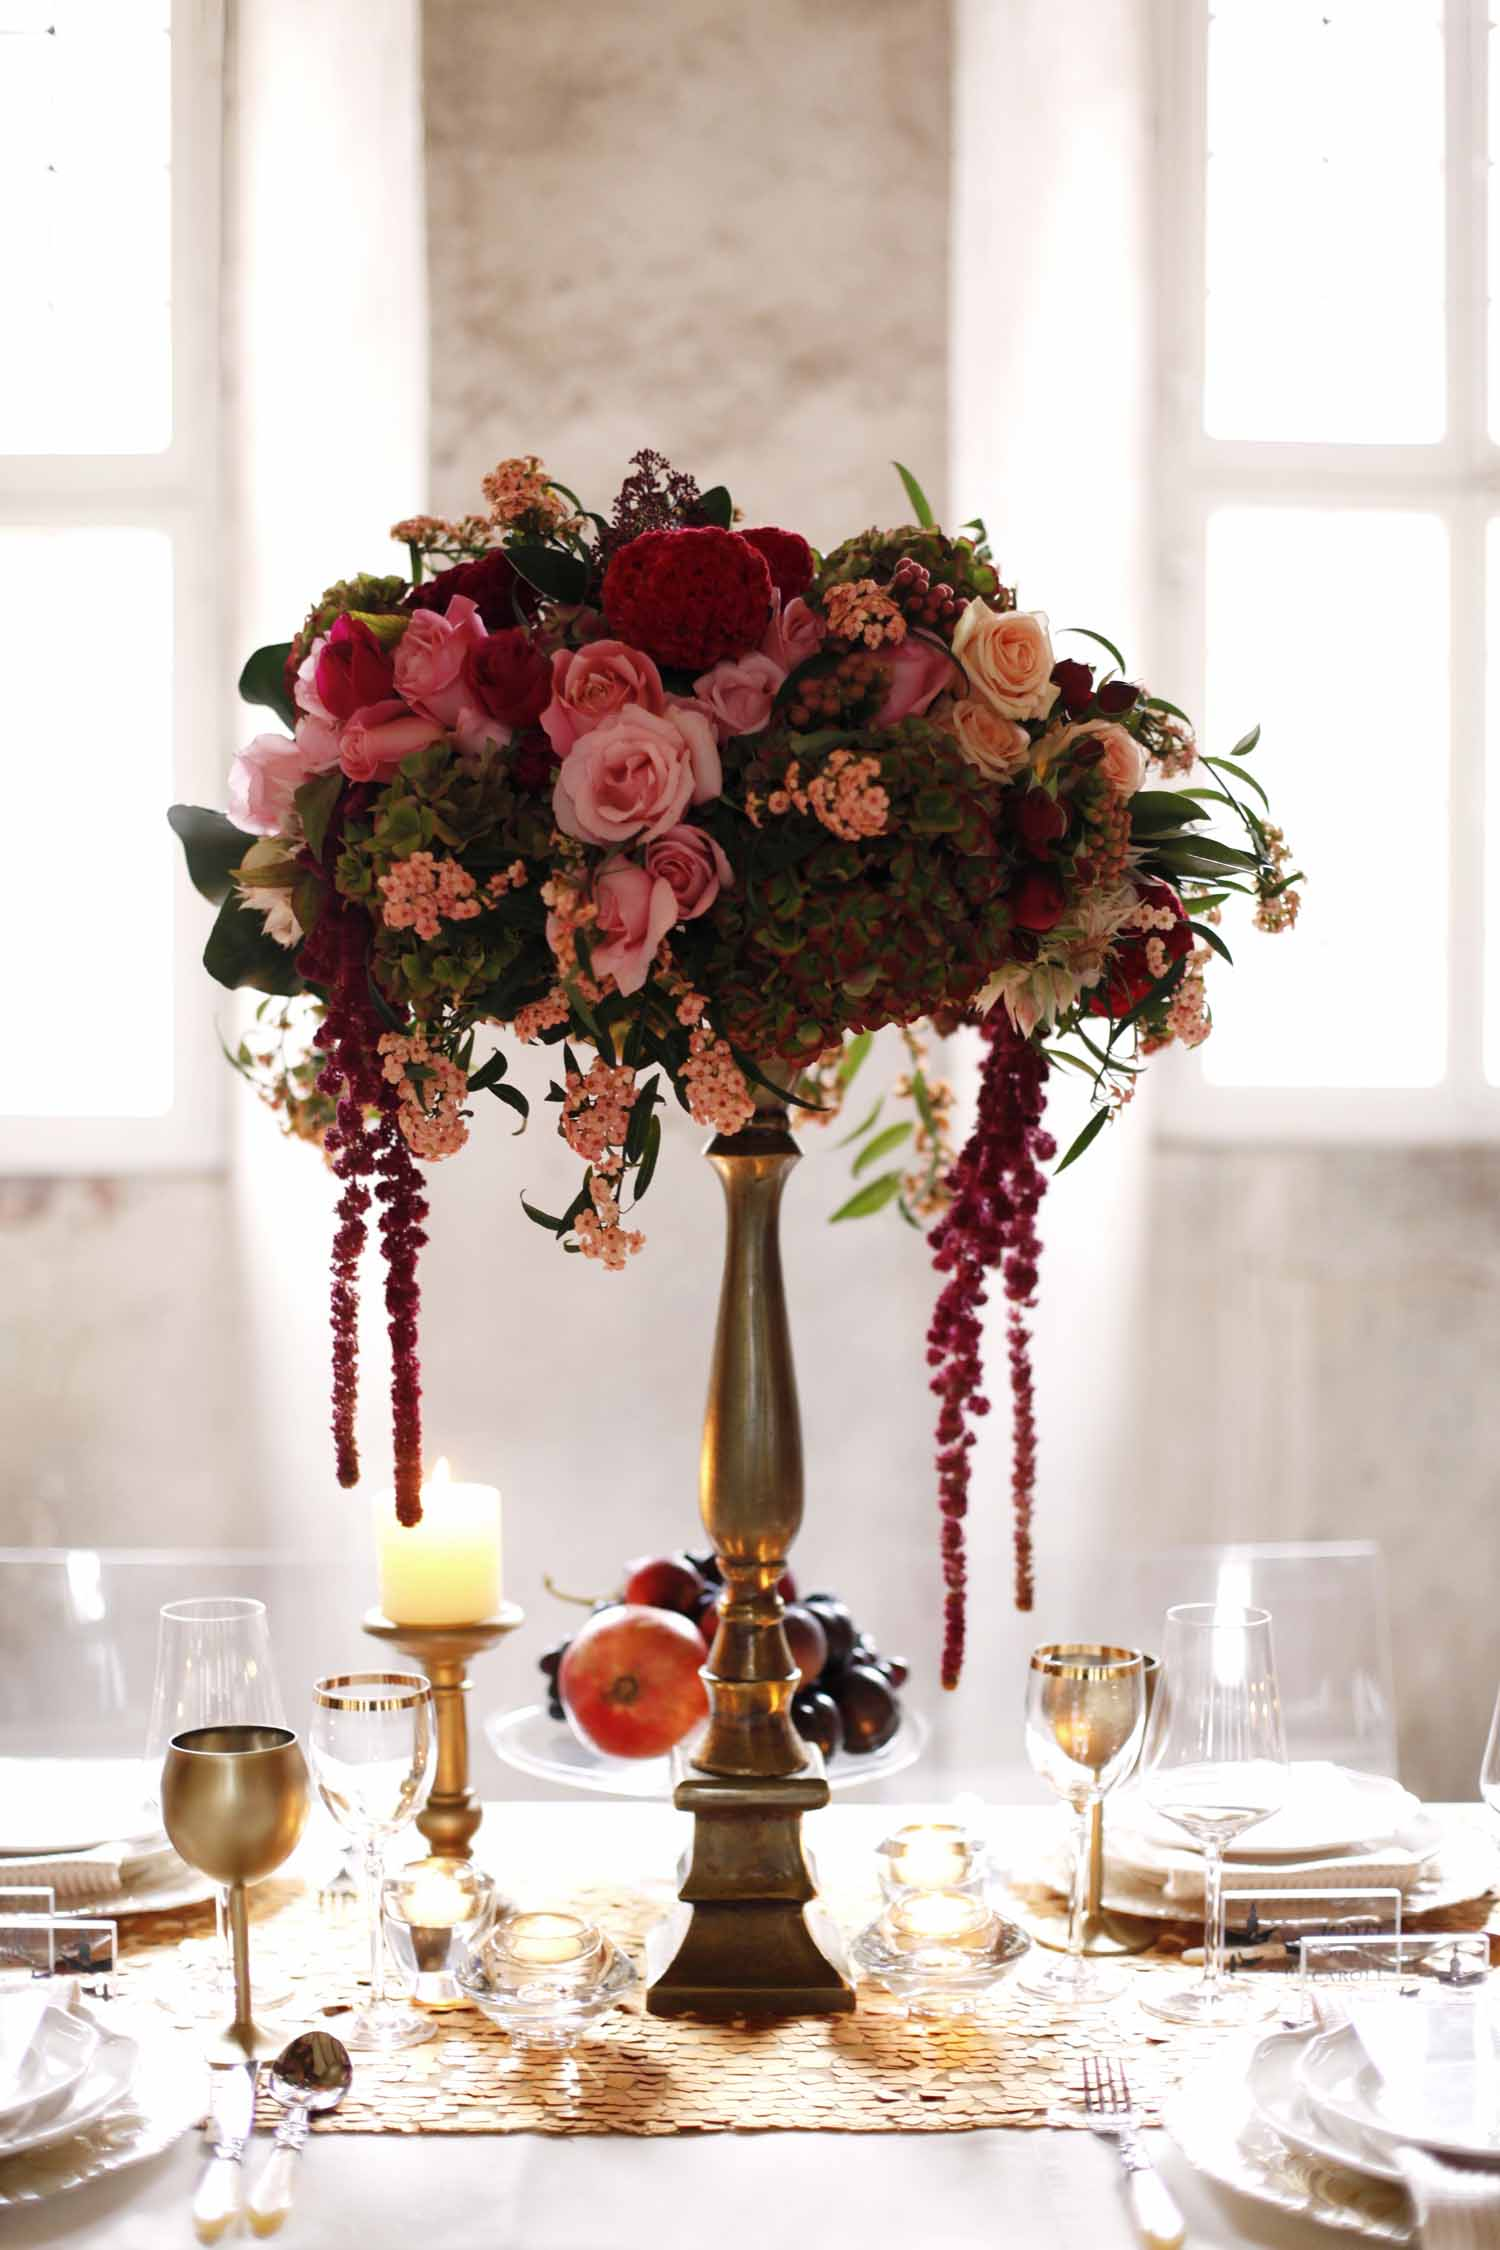 tall centerpiece of red and blush flowers on gold stand for Wedding Style Shoot in Kloster Eberbach, Germany, designed by Flora Nova Design, Seattle